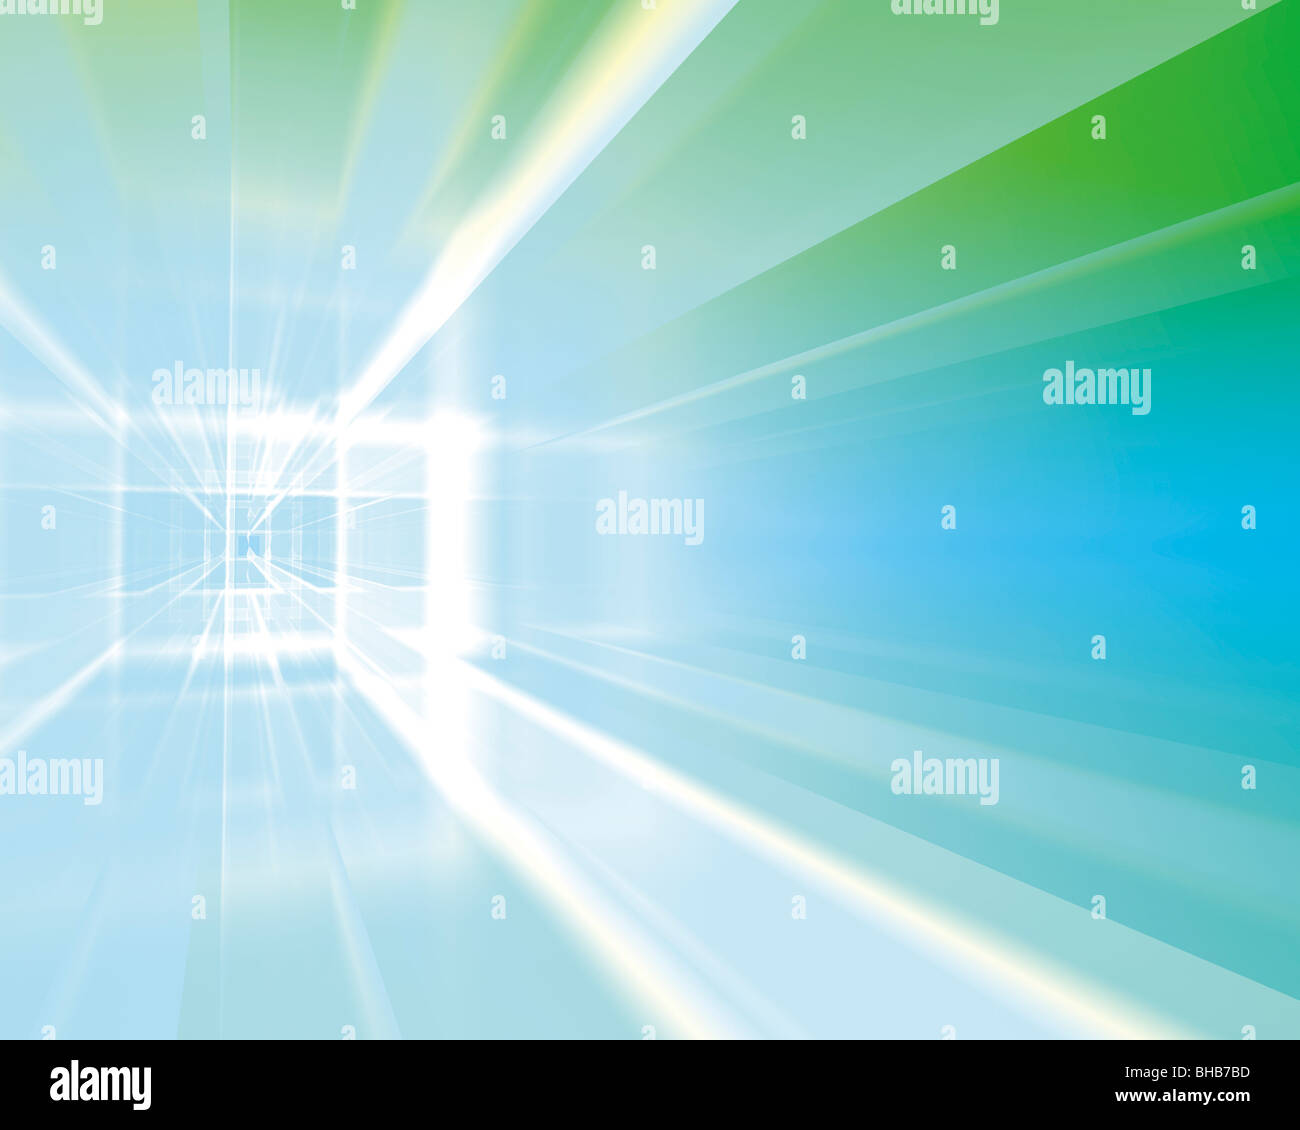 Light beam and abstract patterns (digitally generated) - Stock Image